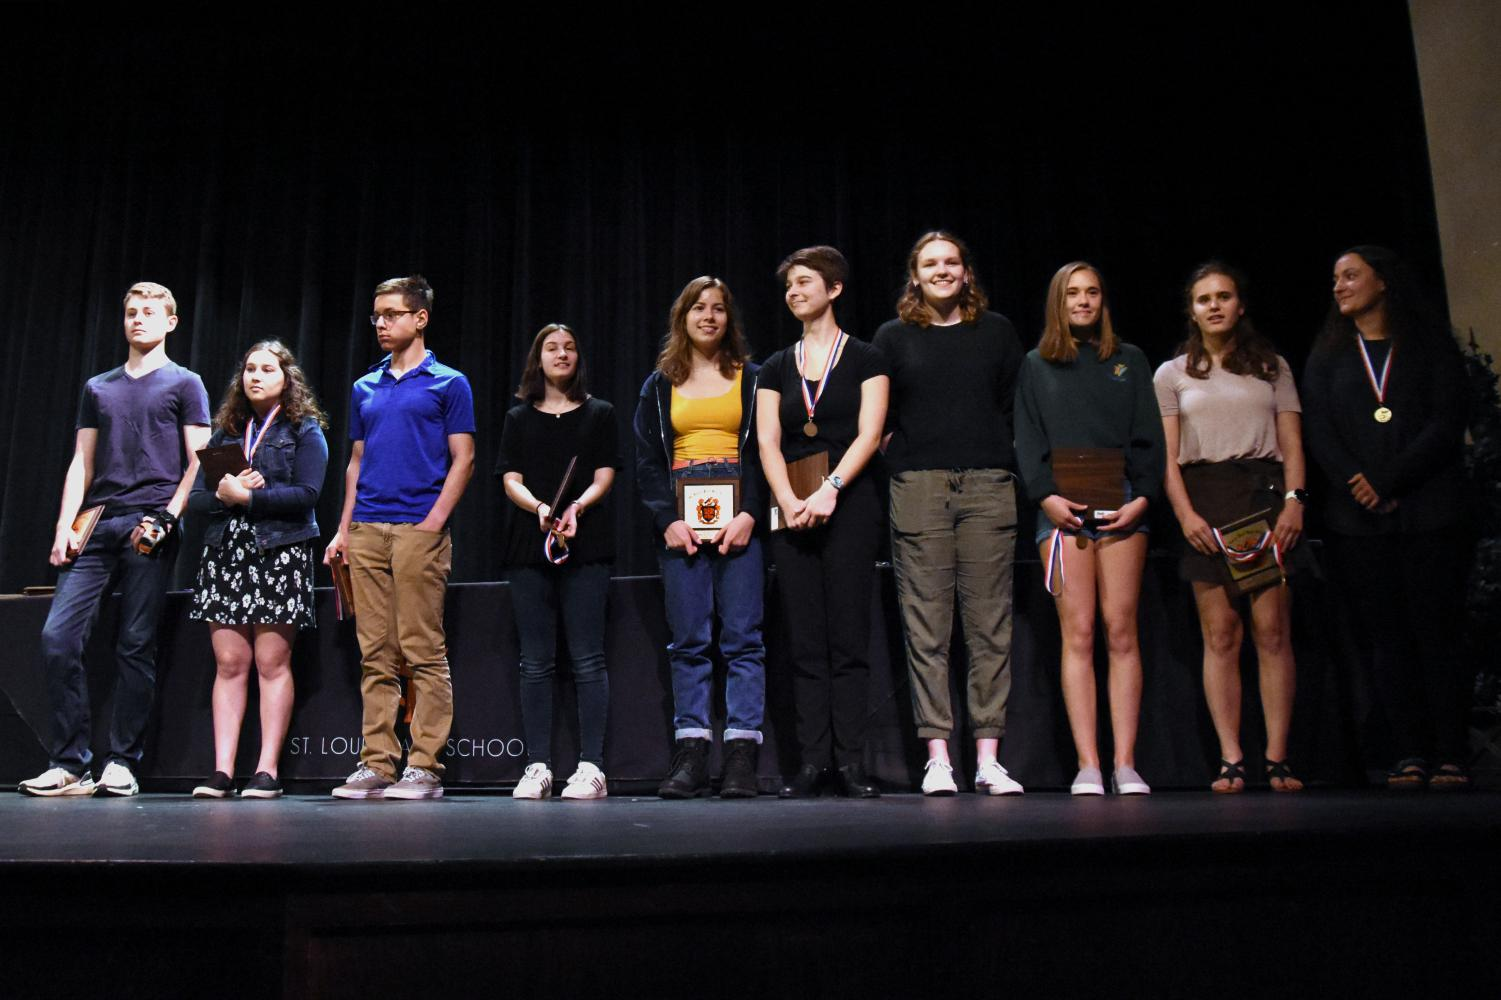 The valedictorians were called to the stage during the Academic Award Ceremony to recognize their work over the past four years.